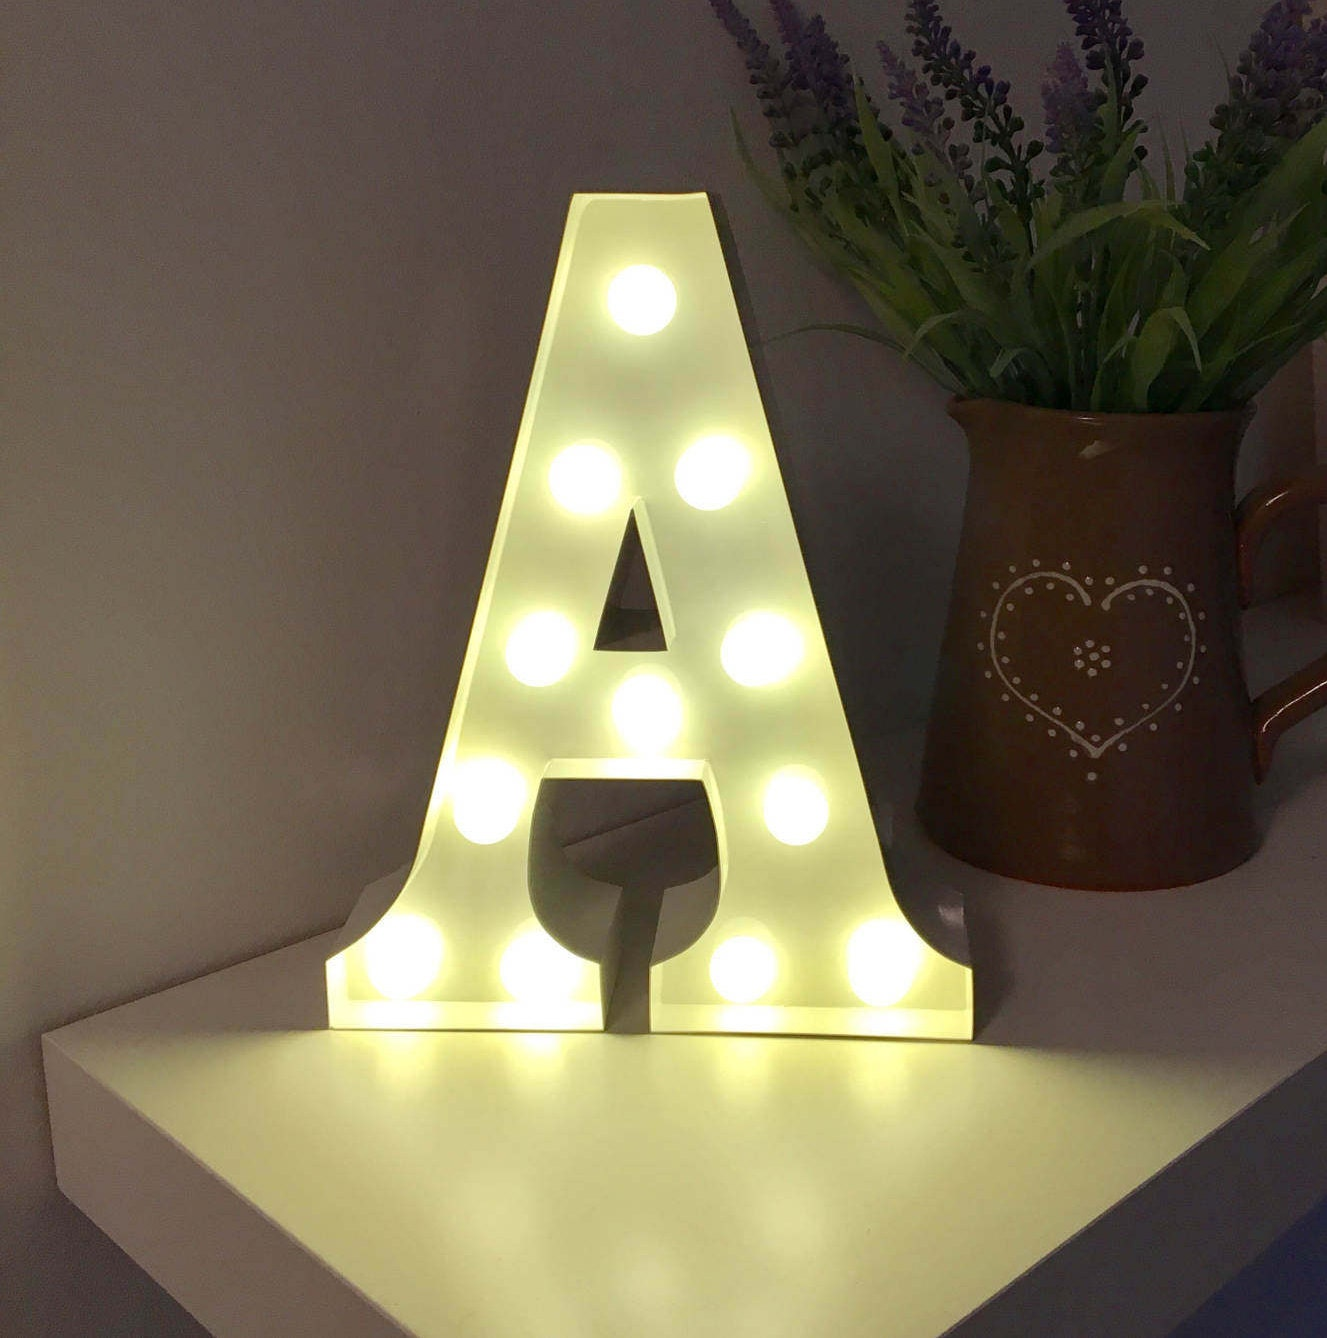 vintage metal fairground marquee light up letter a light various coloursbattery operated perfect night lightgiftbedroomwedding decor